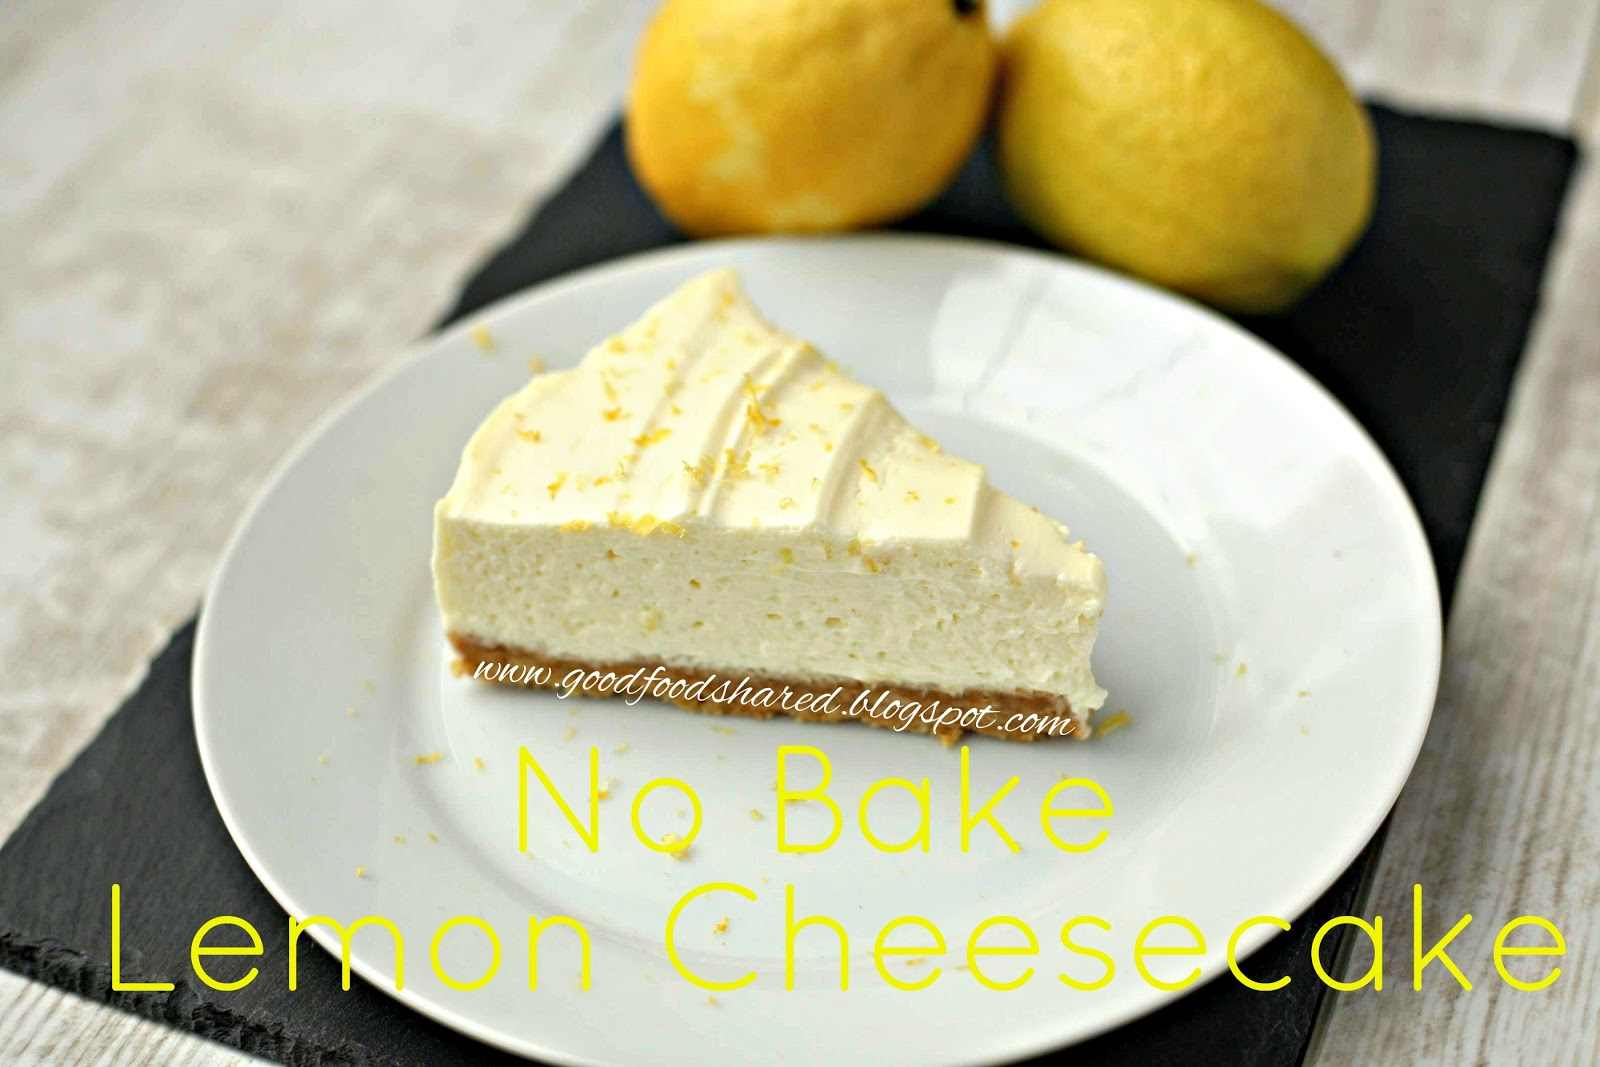 No Bake Lemon Cheesecake, this is a cinch to make and so creamy and light. www.goodfoodshared.blogspot.com